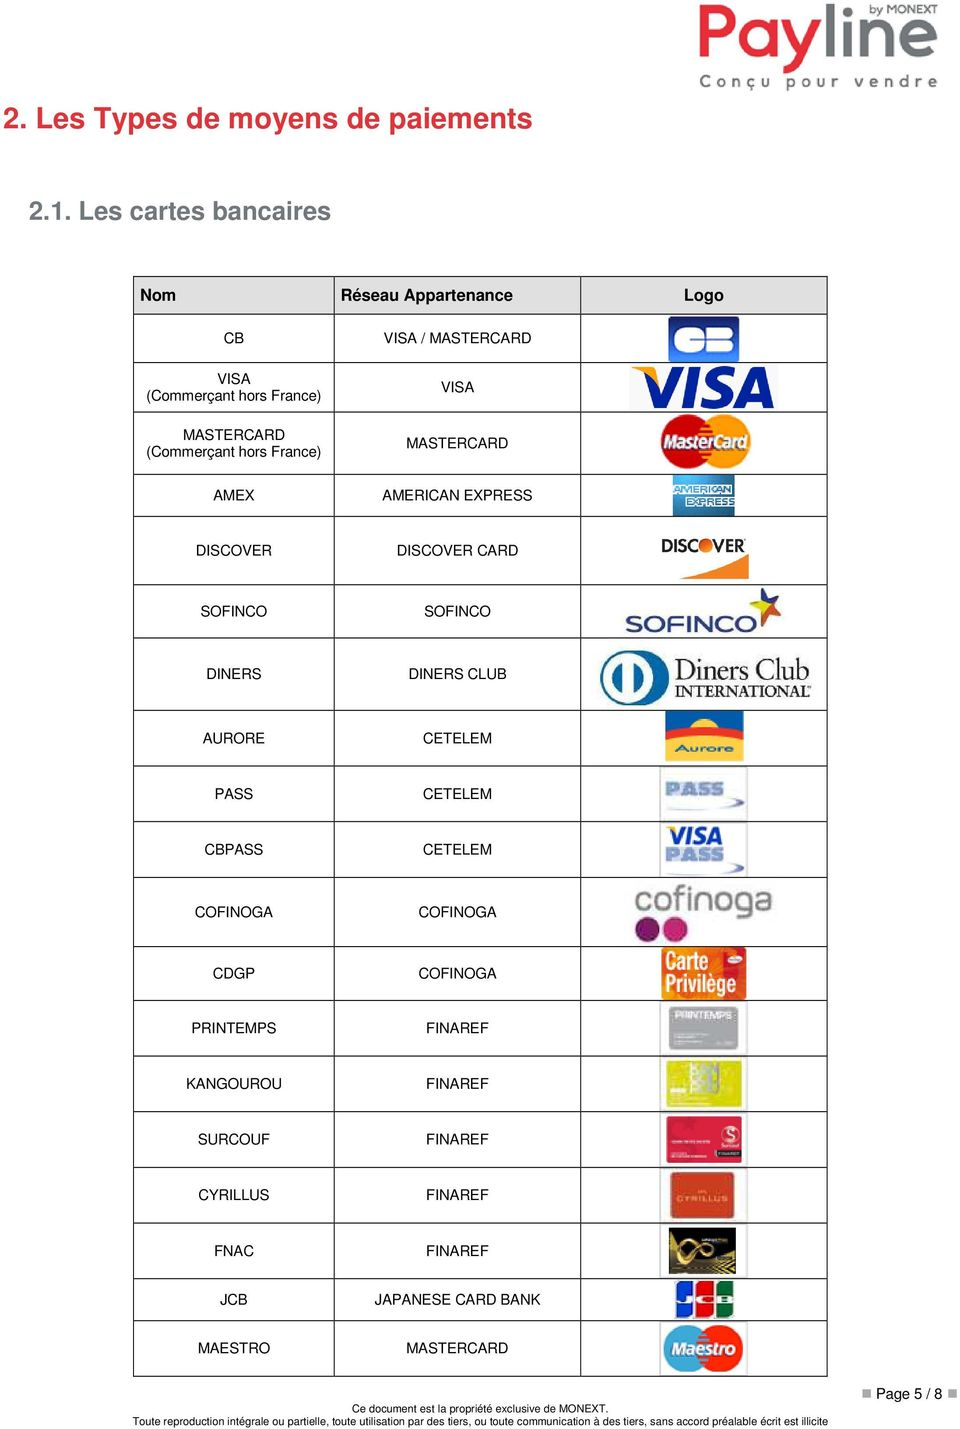 VISA / MASTERCARD VISA MASTERCARD AMEX AMERICAN EXPRESS DISCOVER DISCOVER CARD SOFINCO SOFINCO DINERS